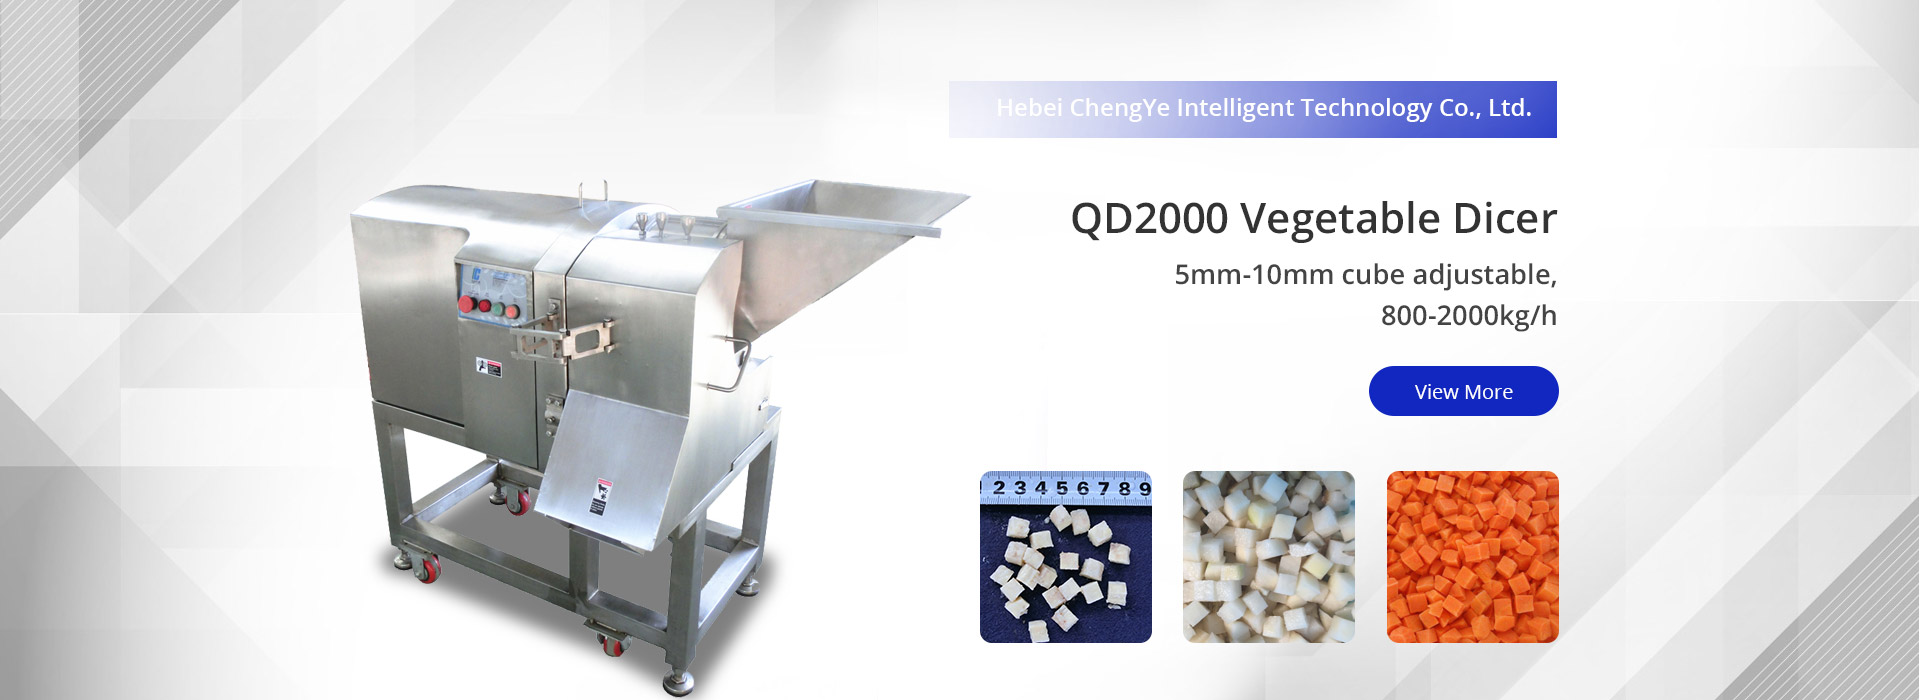 QD2000 Vegetable Dicer